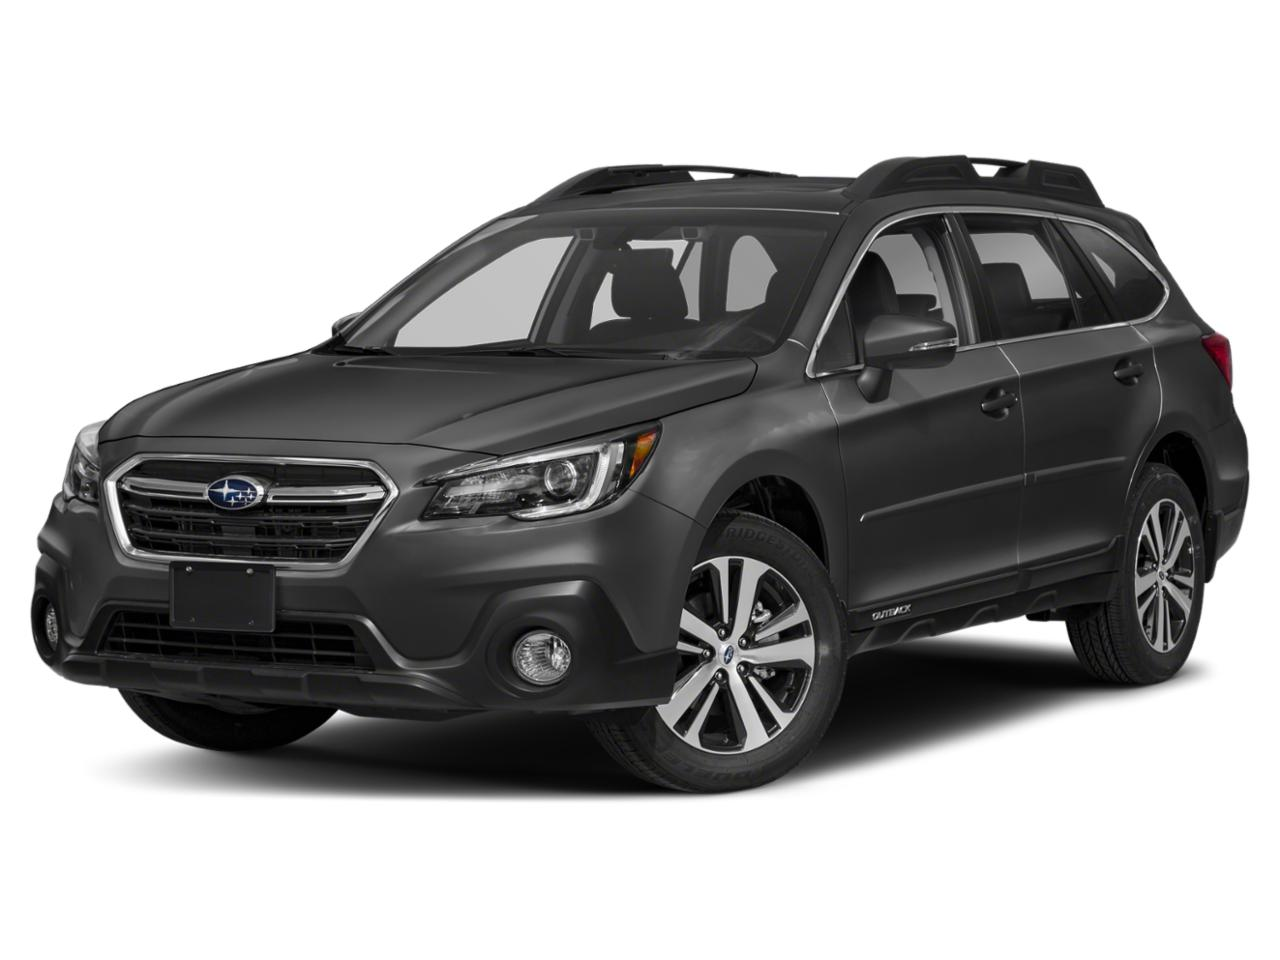 2018 Subaru Outback Vehicle Photo in Cape May Court House, NJ 08210